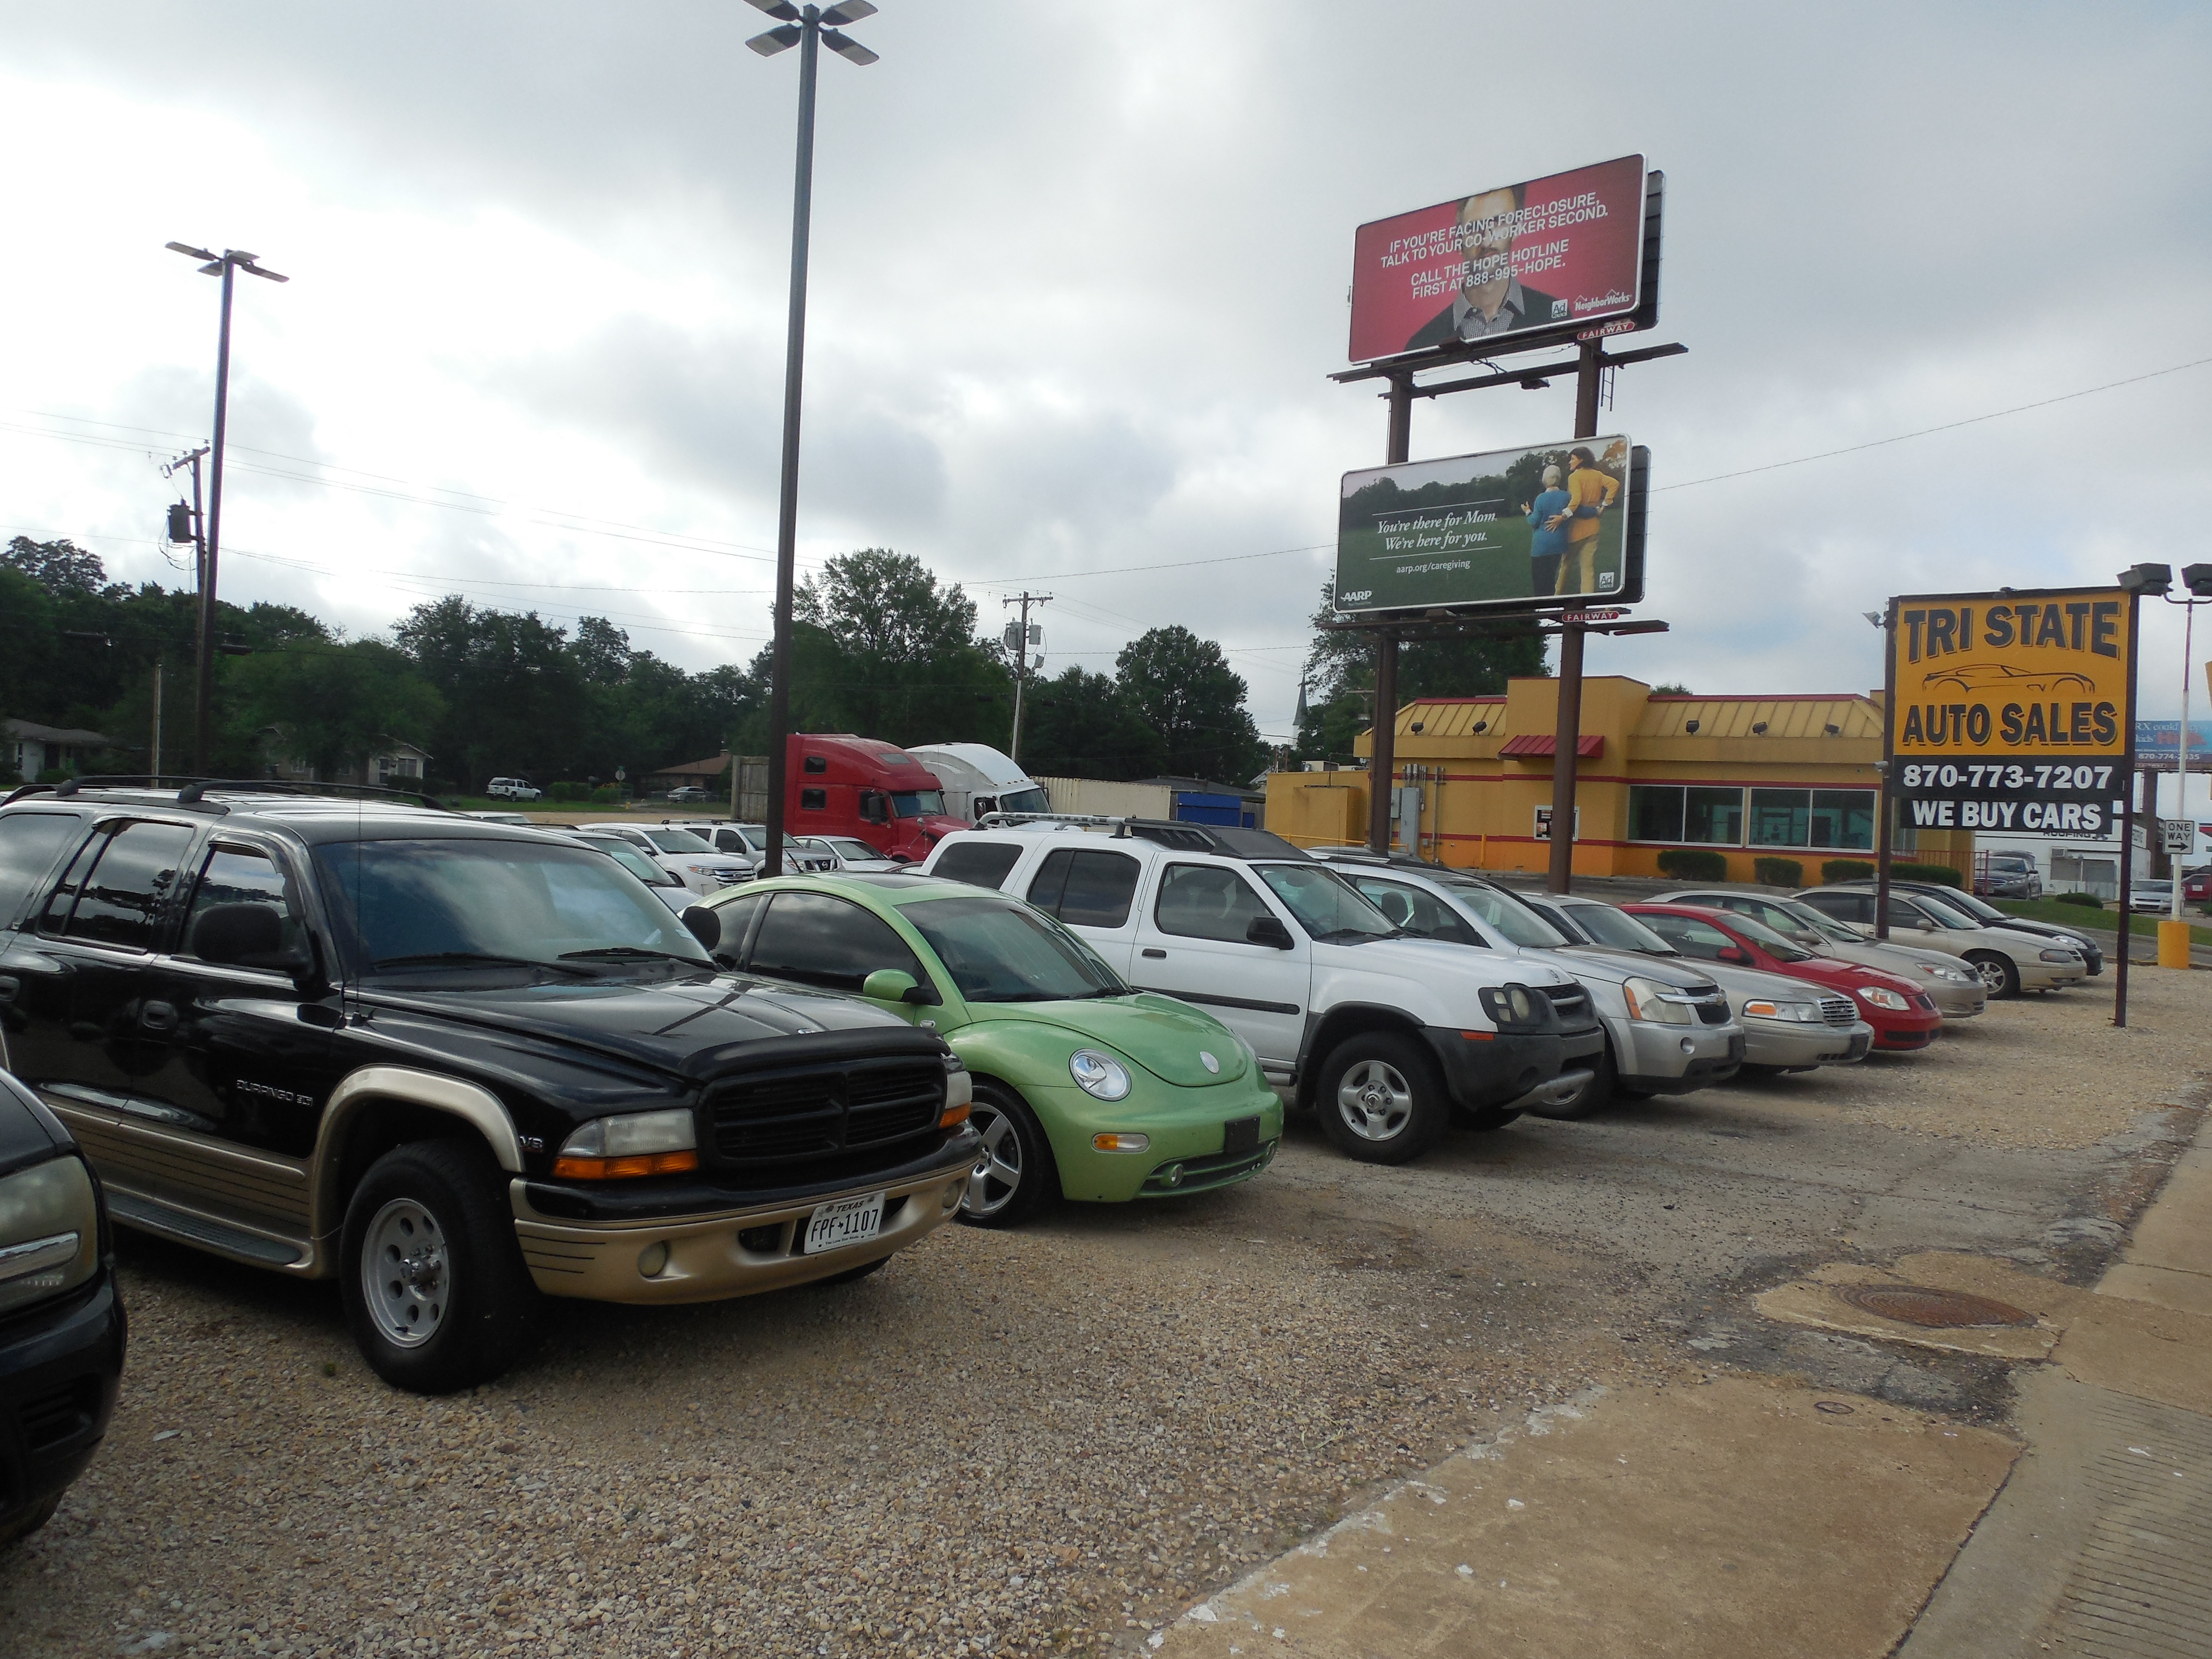 Discover Great Deals on Used Cars in Texarkana, AR